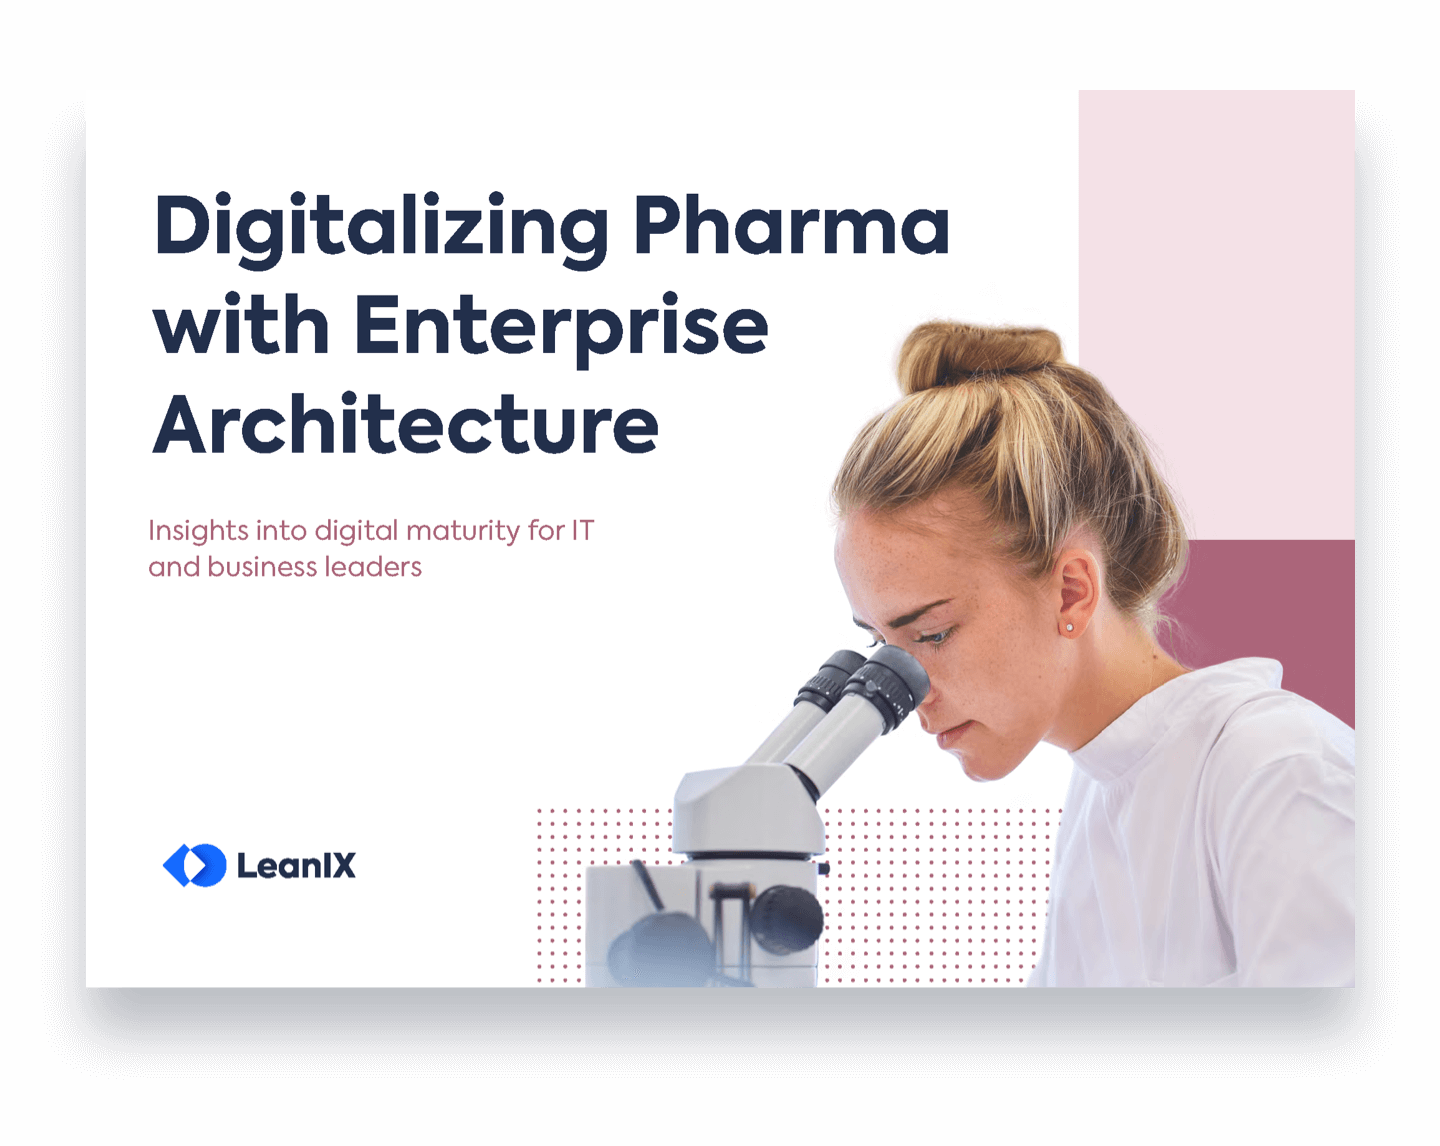 Enterprise Architecture Pharmaceutical Industry Guide